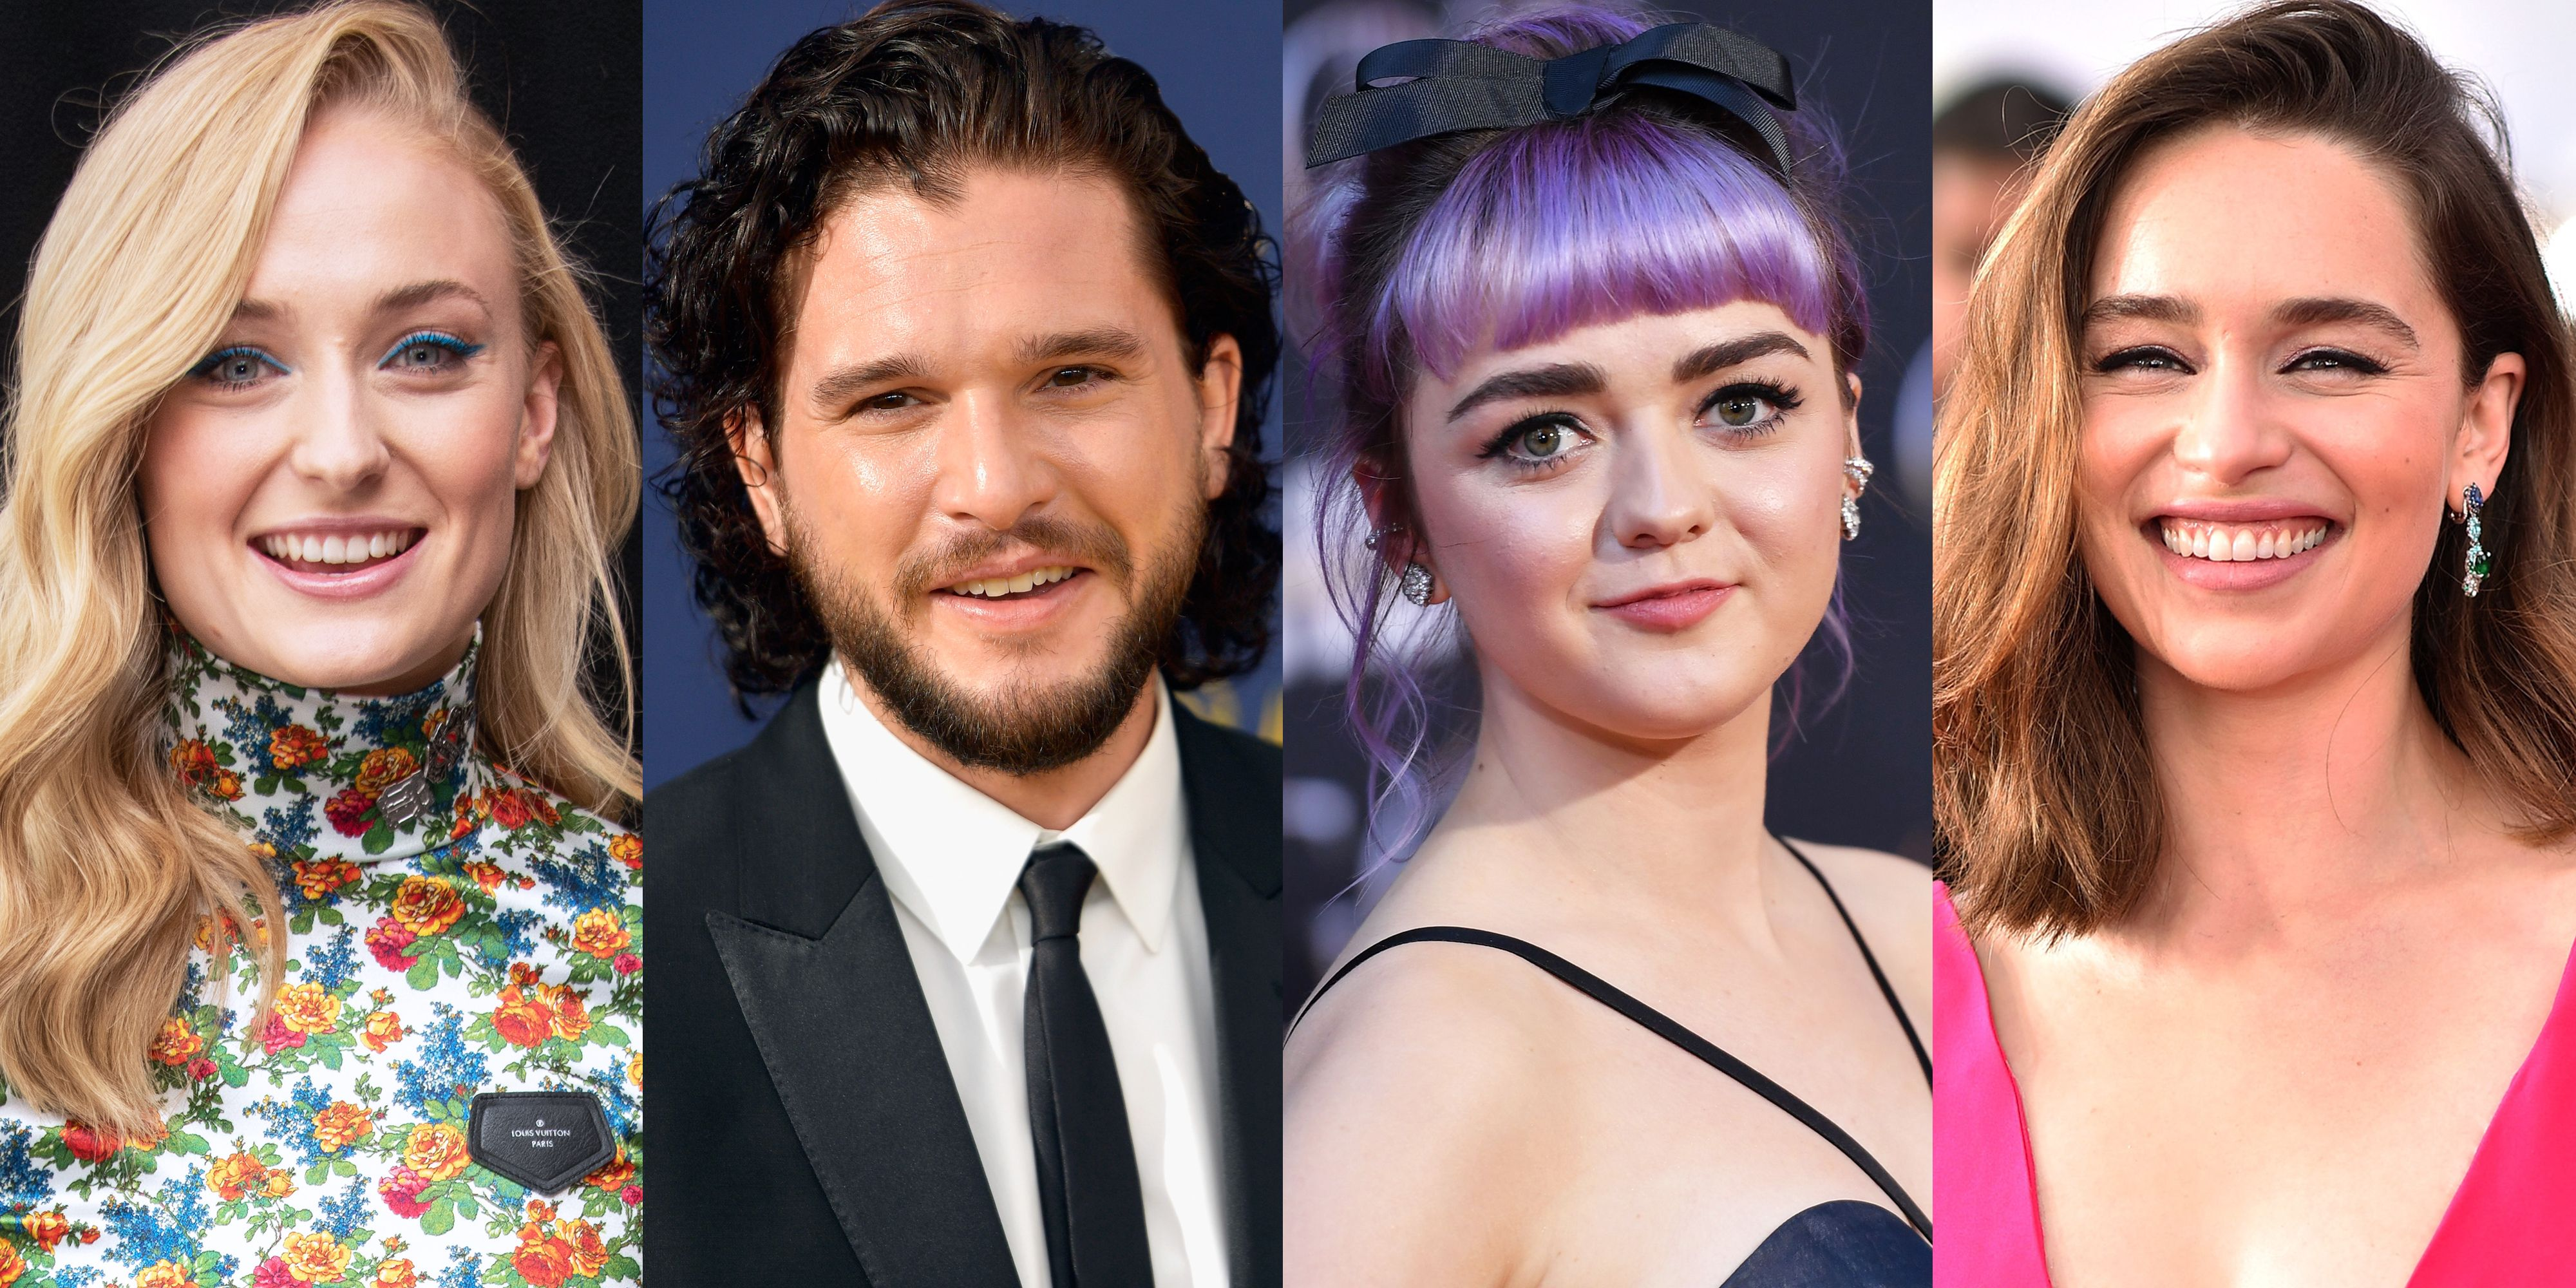 Game of thrones season 7 ep 3 cast